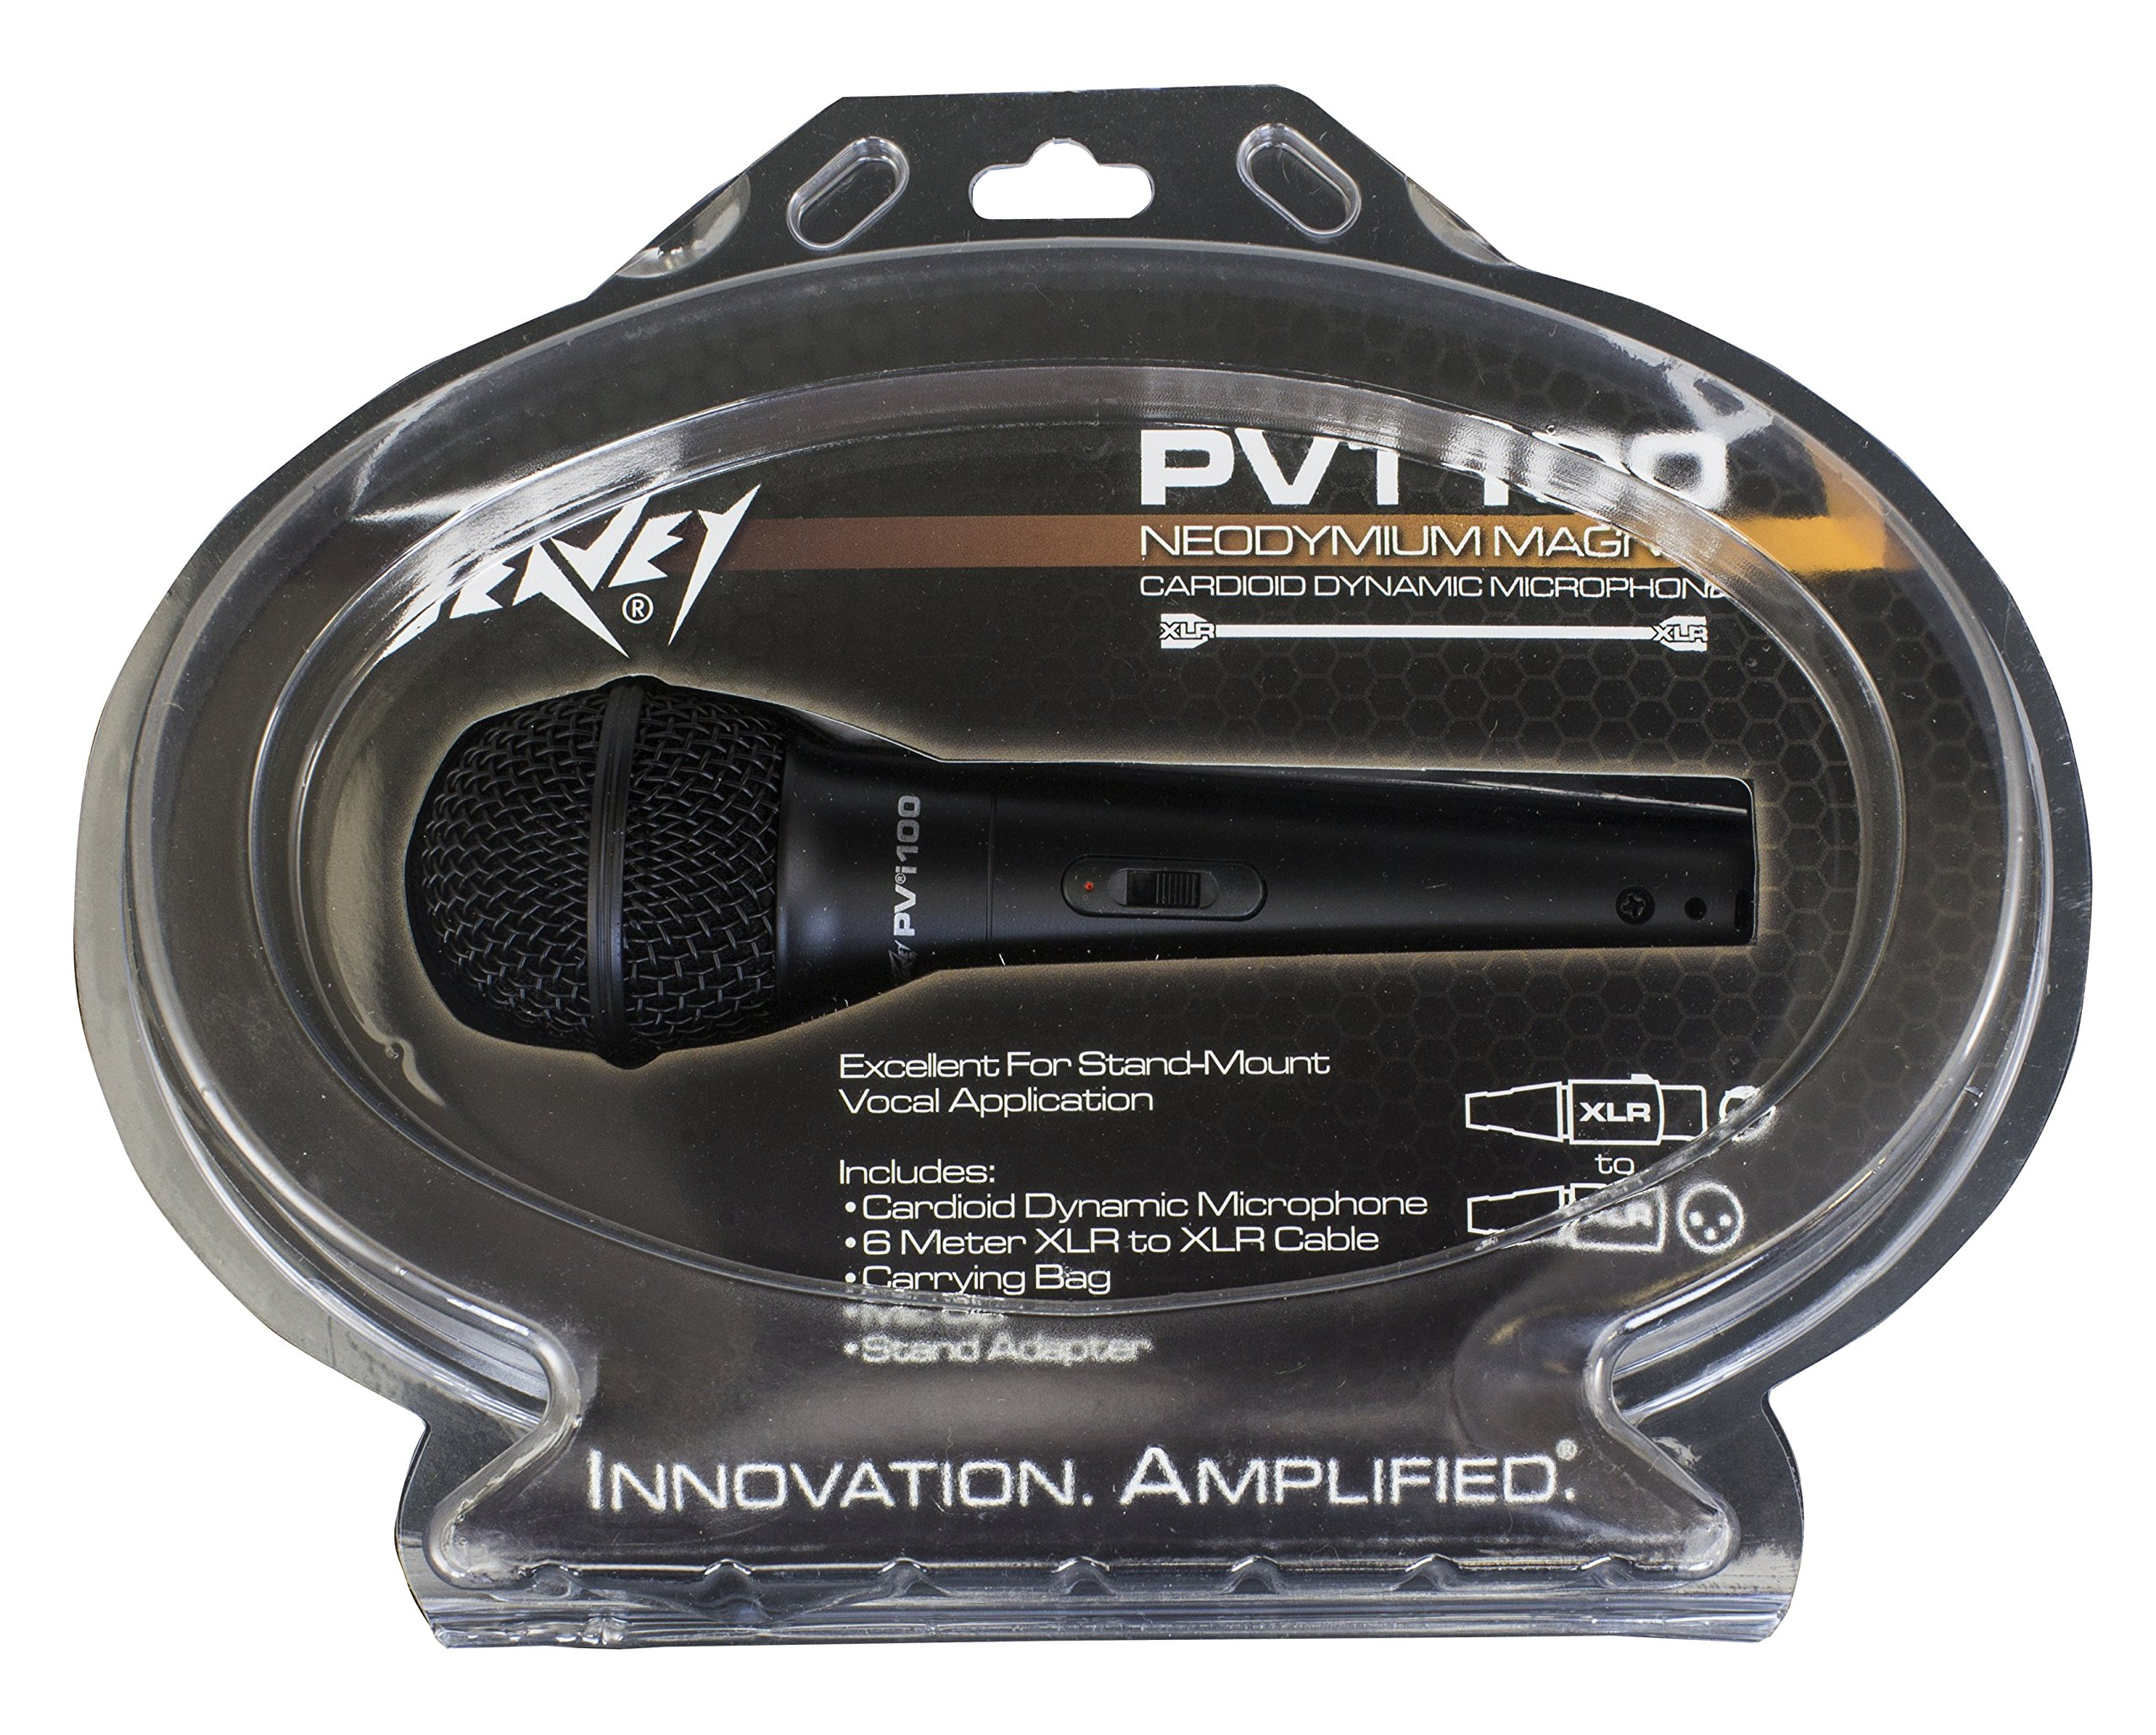 Peavey Pvi 100 Dynamic Vocal Cardiod Microphone with XLR Cable and Clip by Peavey